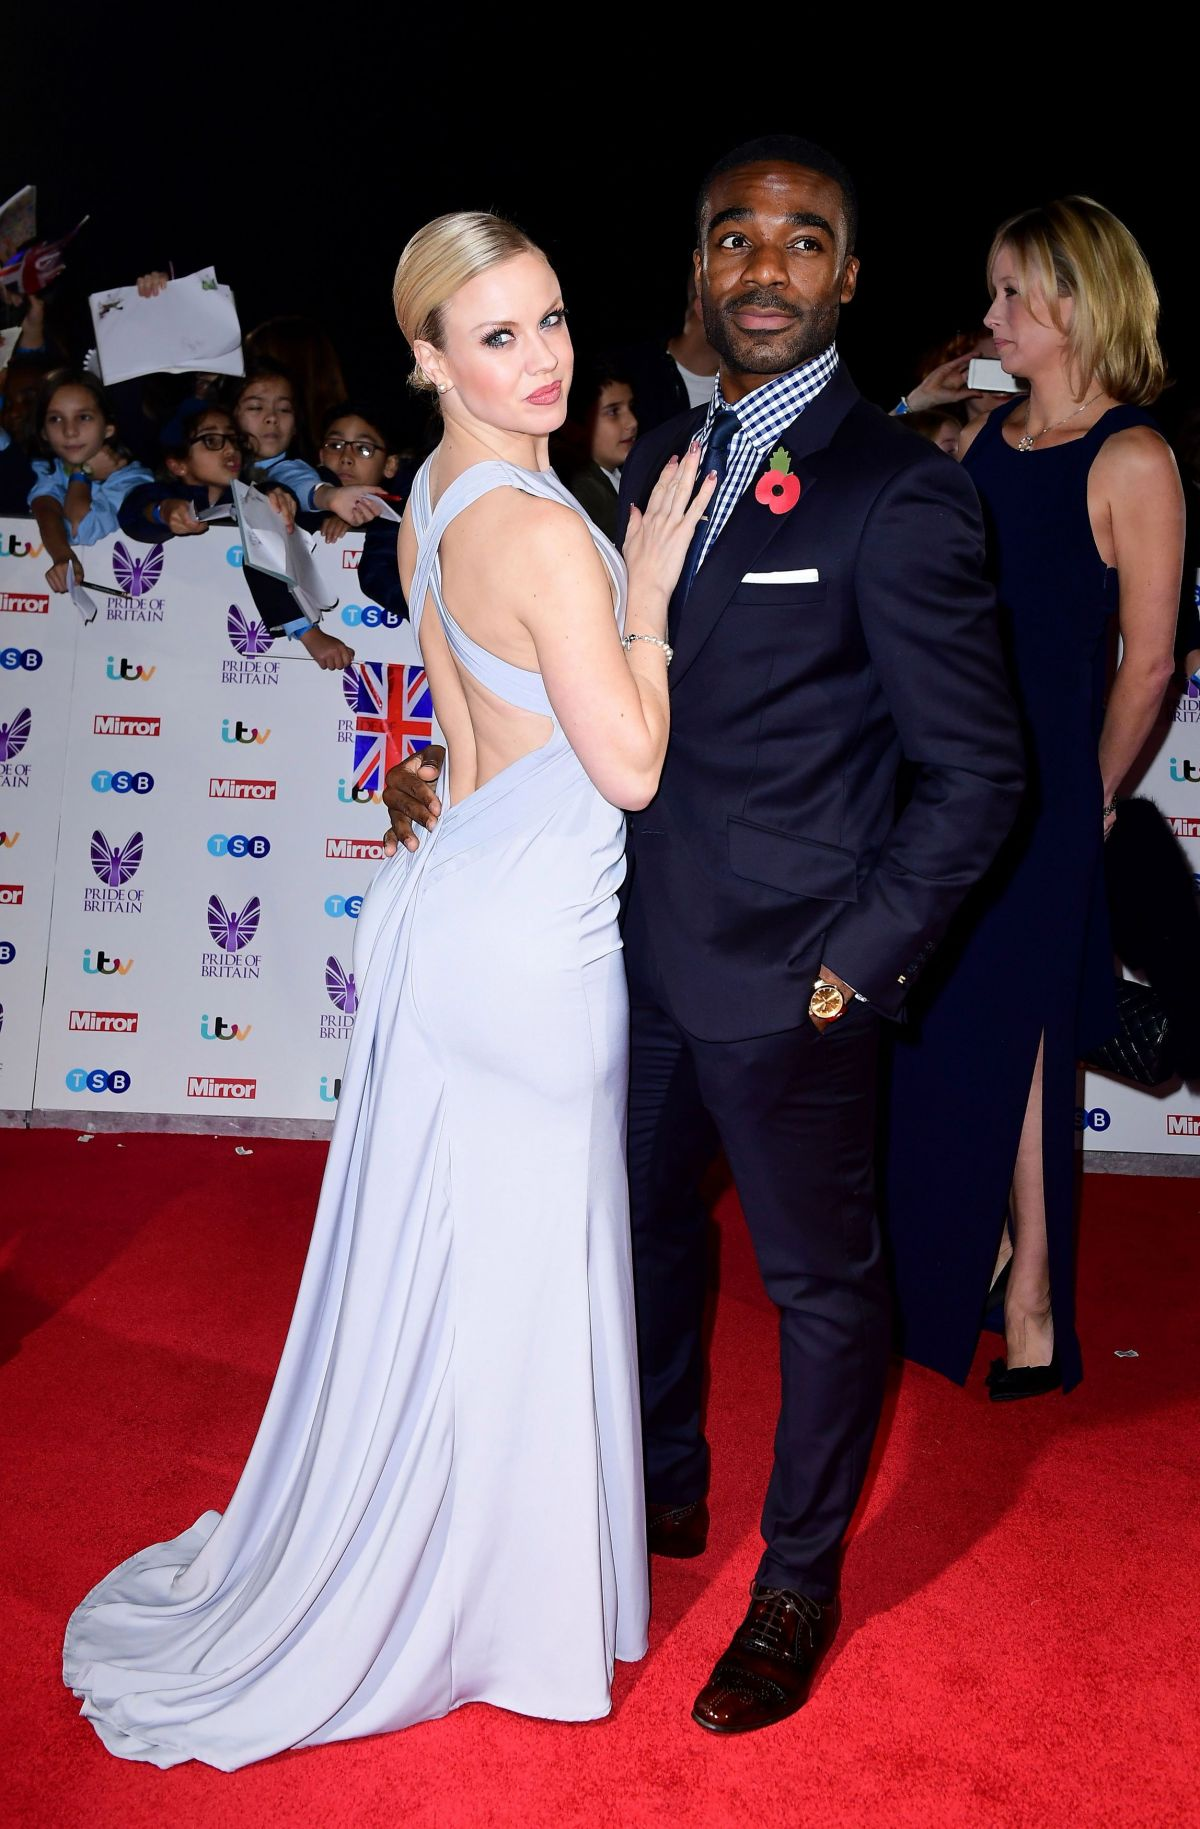 JOANNE CLIFTON at Pride of Britain Awards 2016 in London 10/31/2016